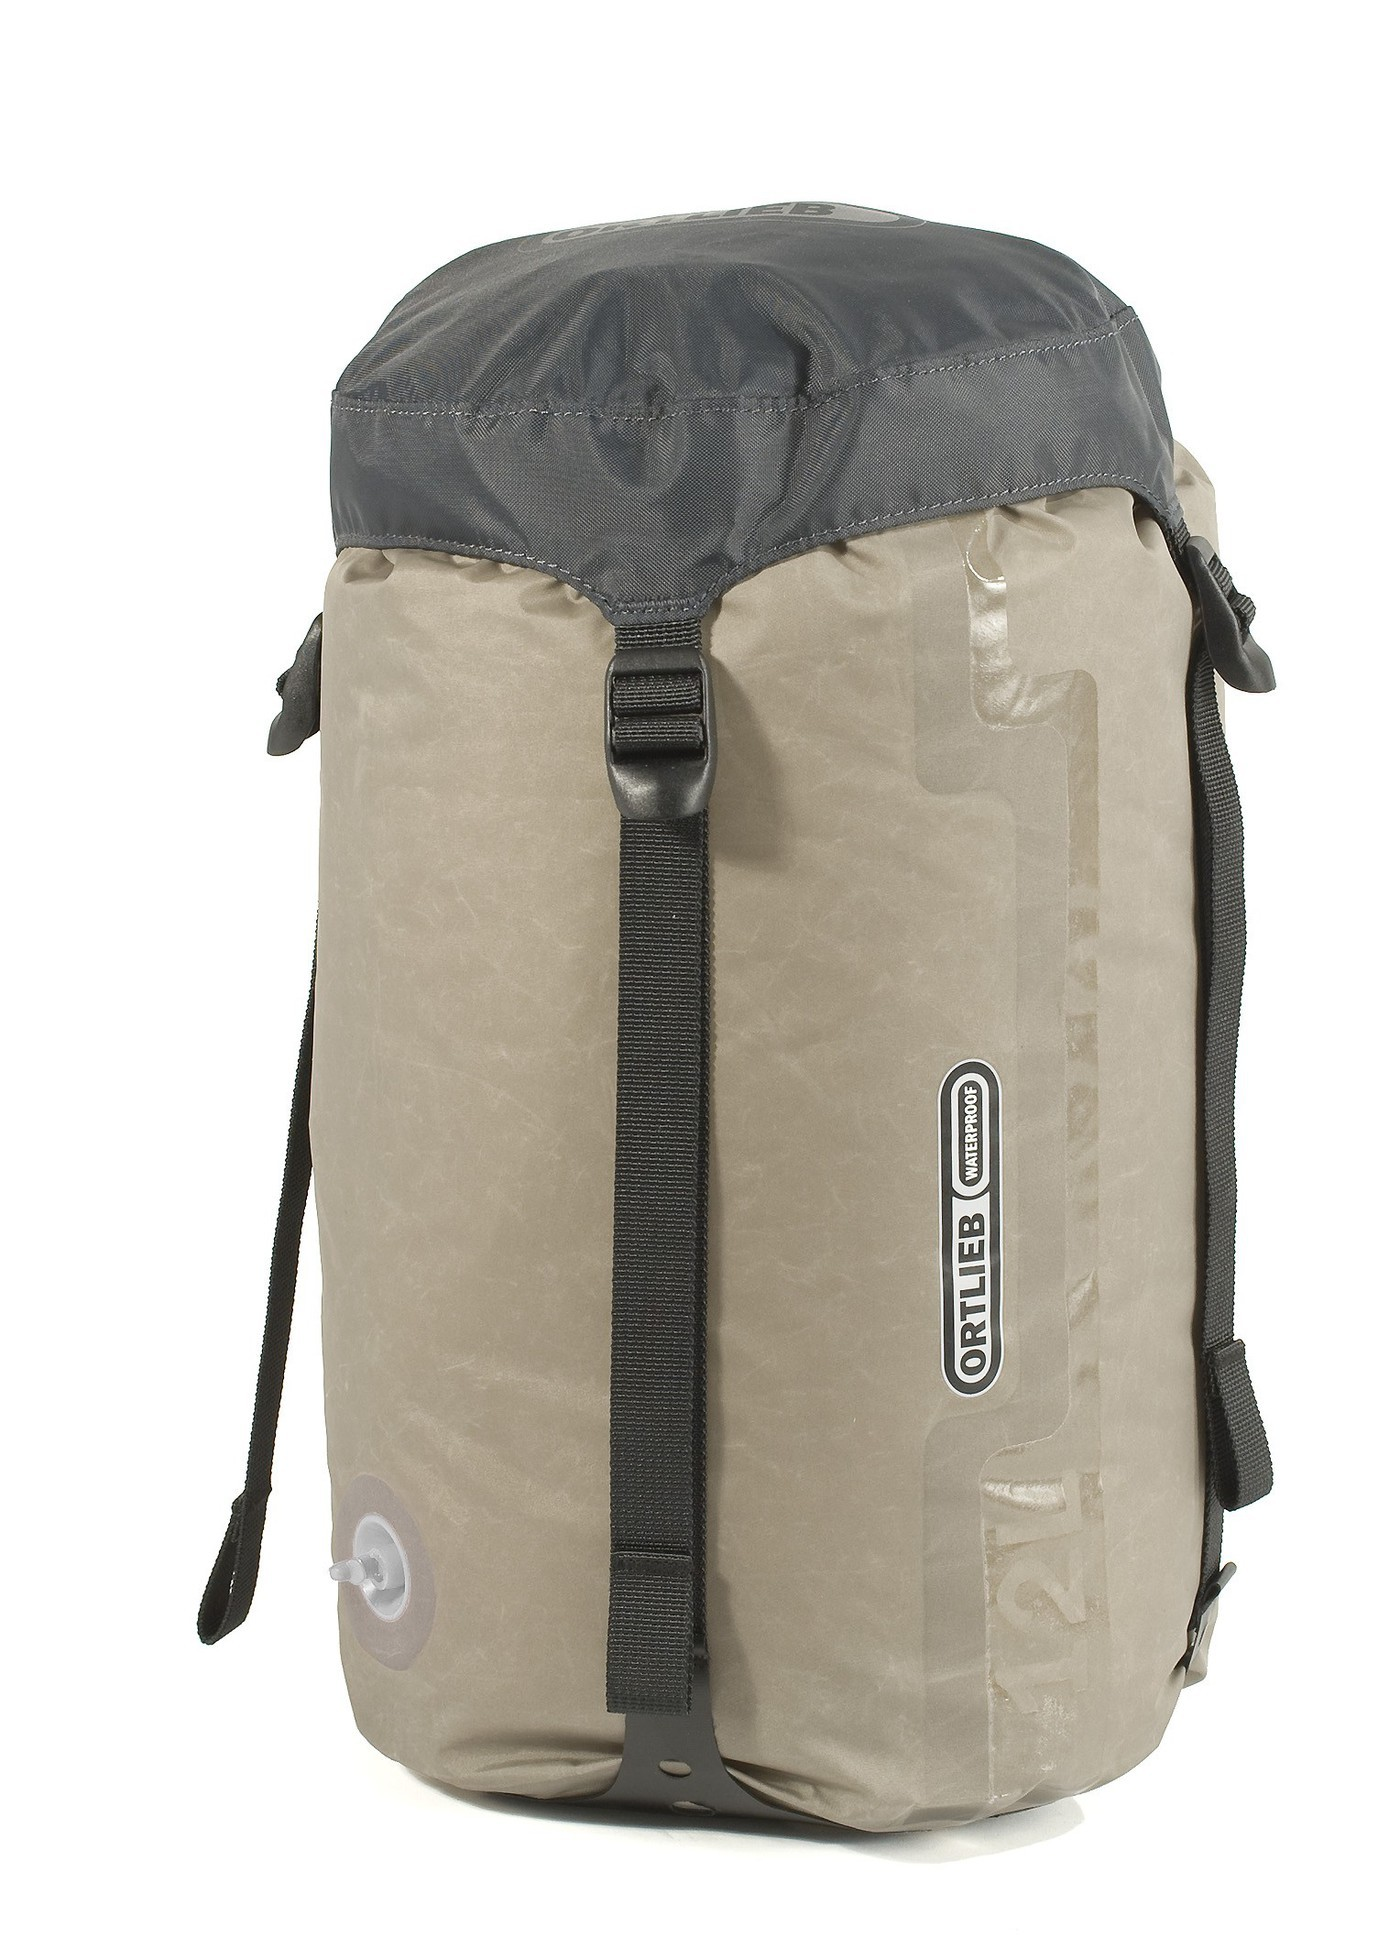 compression Dry bag ps10 with straps/valve